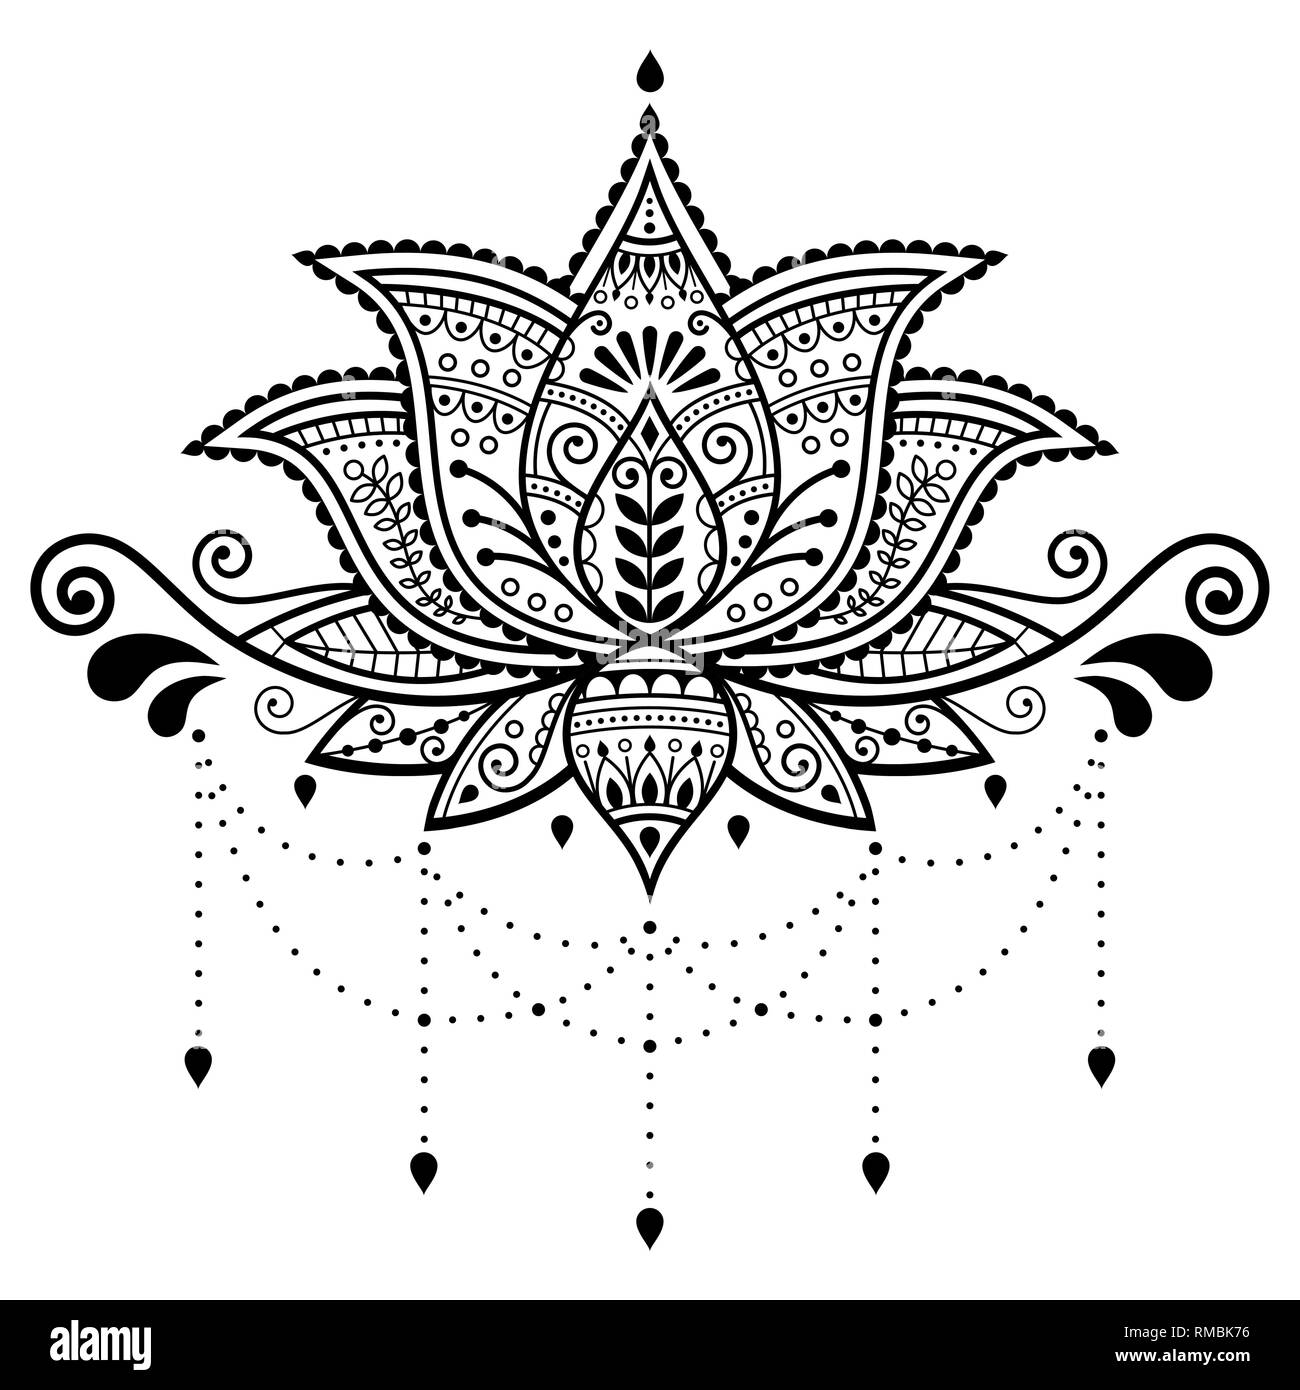 Lotus Flower Vector Design Indian Ornamental Pattern Mehndi Henna